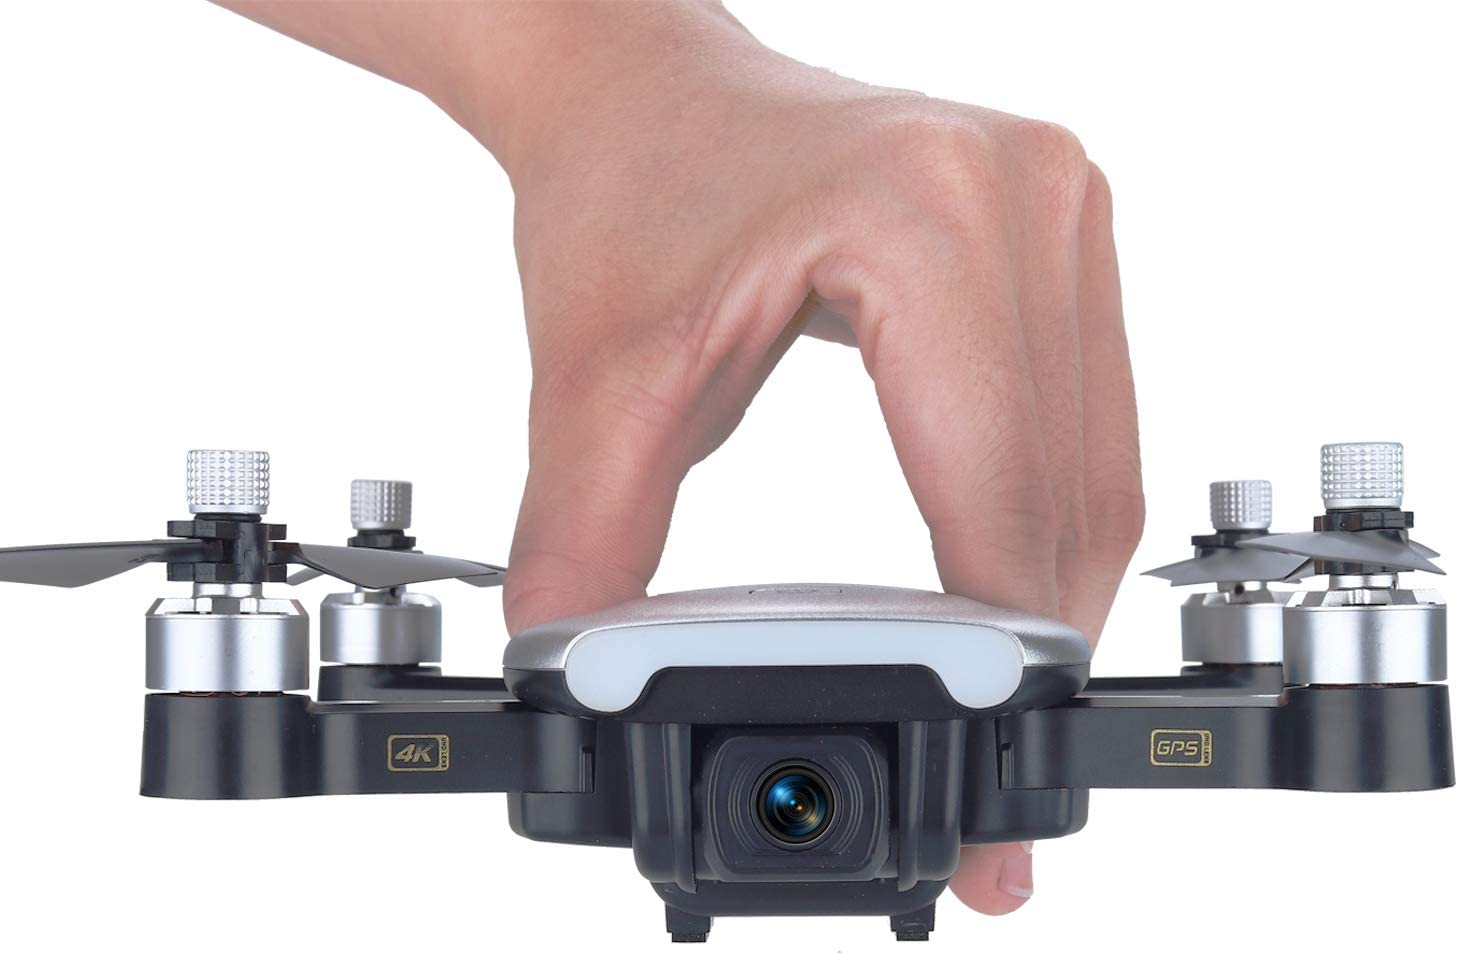 Contixo F30 Drone for Kids & Adults Wi-Fi 4K UHD Camera and GPS, FPV Quadcopter for Beginners, Foldable Mini Drone, Brushless Motor, Follow Me, Two Batteries, and Carrying Case Included